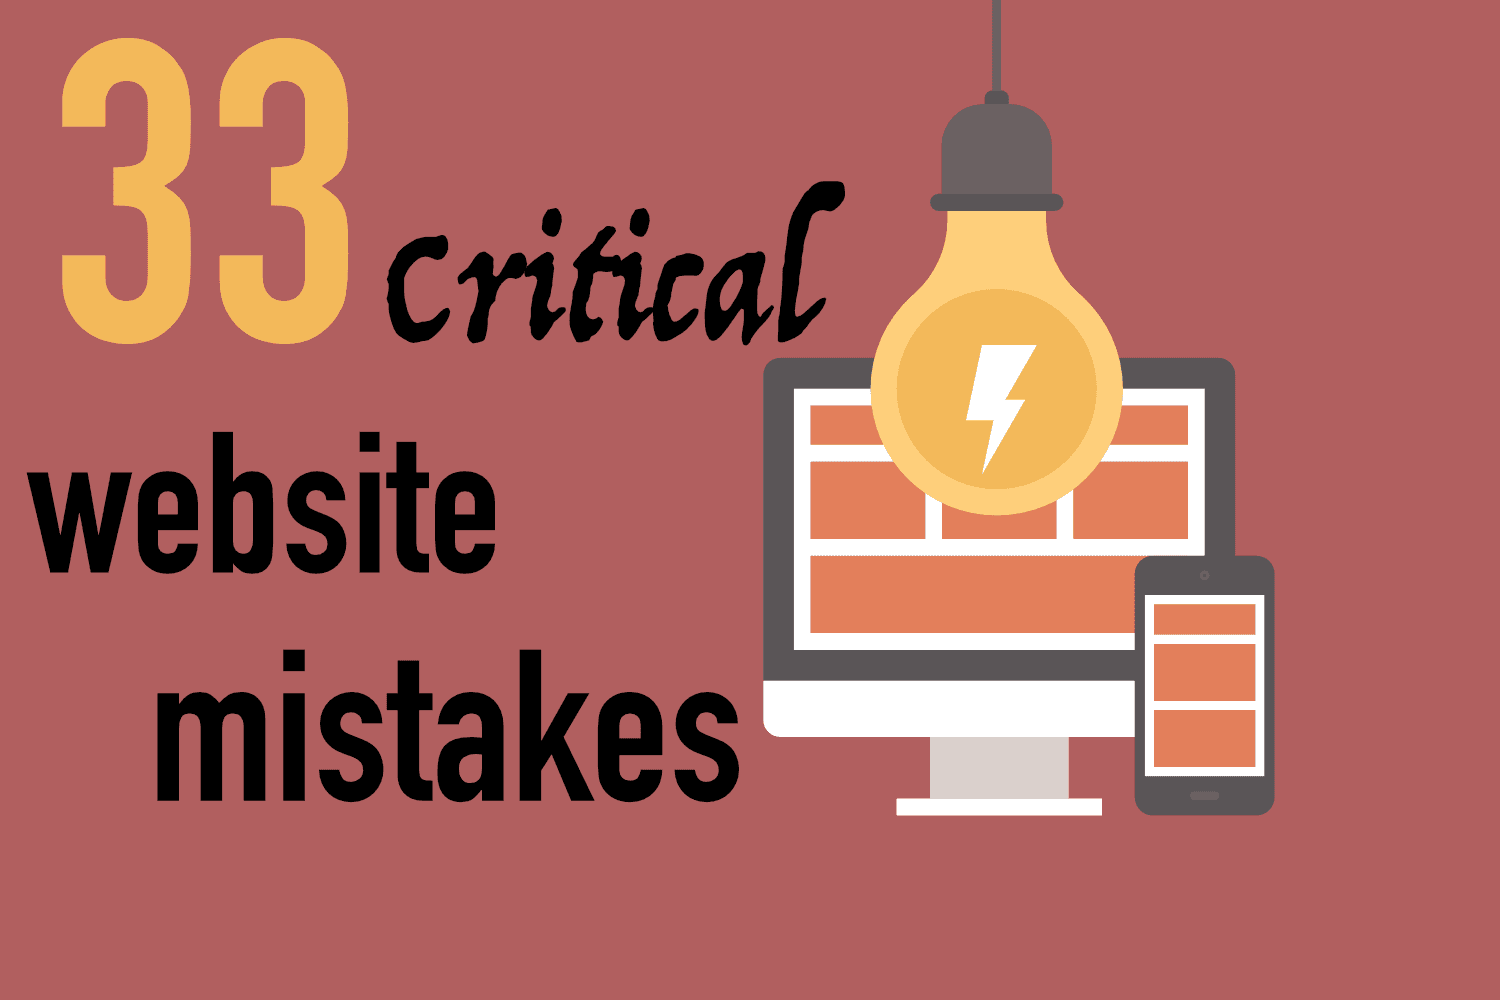 33 Critical Website Mistakes You Should Avoid at all Cost